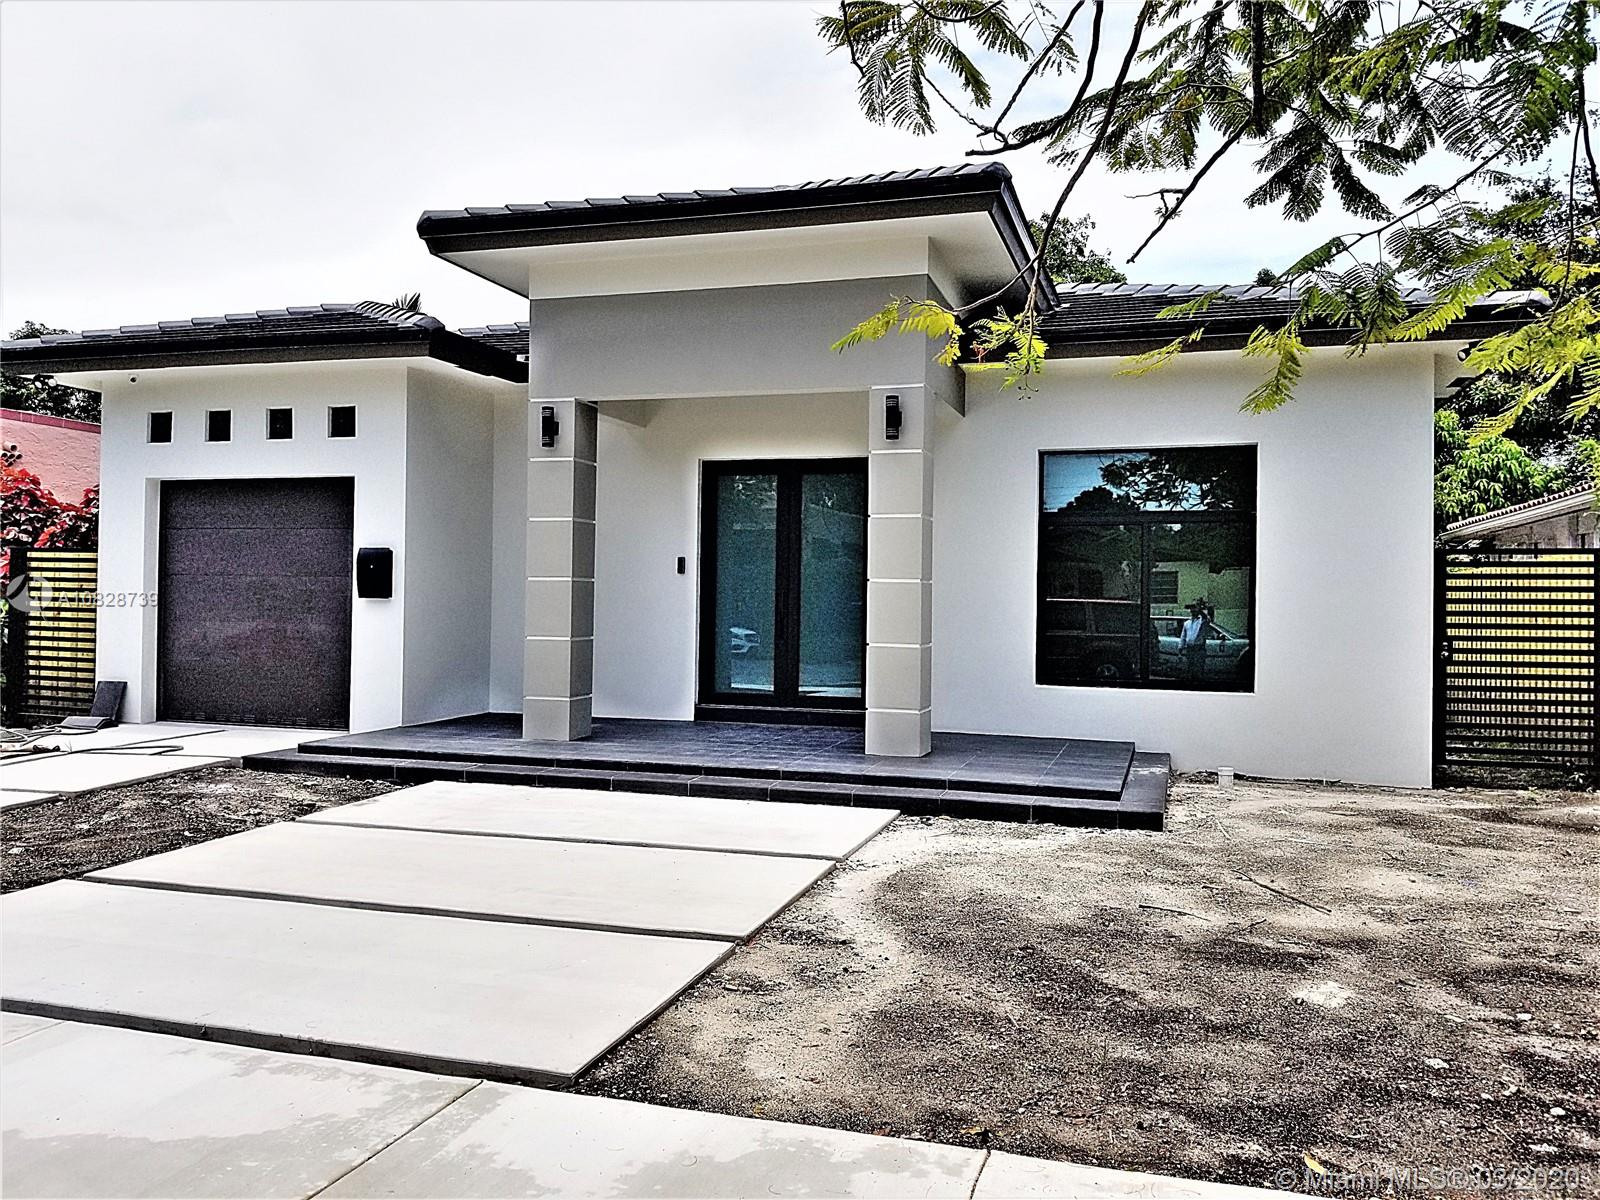 UNDER CONSTRUCTION,,,OFFERED AT PRE-CONSTRUCTION PRICE,,,BRAND NEW HOME,,,ESTIMATED COMPLETION DATE: LATE SEPT. 2020,,,3 BEDS + 2.5 BATHS,,,APROX. 2,161 SQFT UNDER A/C AREAS,,,CENTRALLY LOCATED BETWEEN CORAL GABLES AND BRICKELL,,,COVERED TERRACE & LARGE PATIO (ROOM FOR POOL),,,LOT SIZE: 7,150 SQFT,,,PORCELAIN TILES,,,SMART HOME SYSTEM WITH ALARM & CAMERAS,,,S.STEEL APPLIANCES WITH QUARTZ COUNTERTOPS,,,**(ALL FINISHES WILL BE SAME OR SIMILAR TO THE ONES ON PICTURES)**